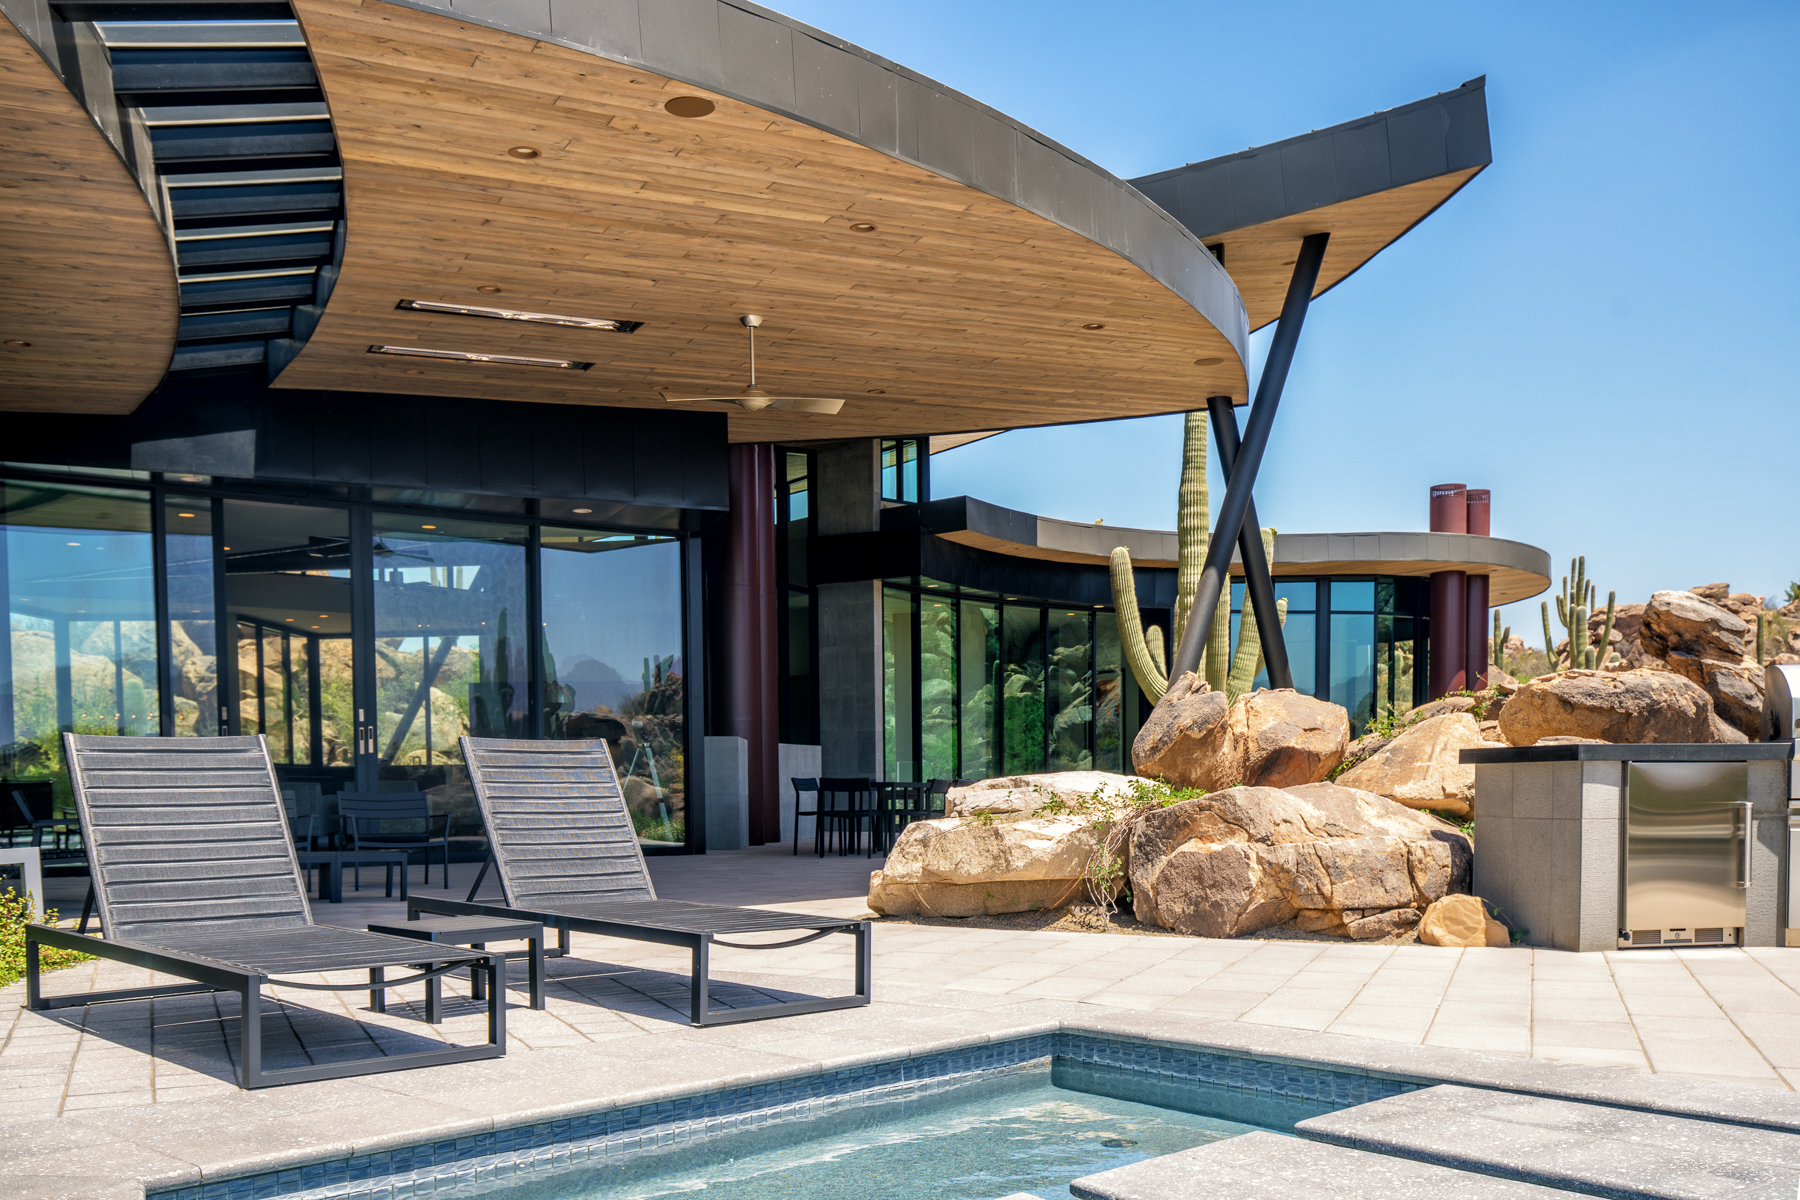 residence by soloway designs in stone canyon oro valley arizona